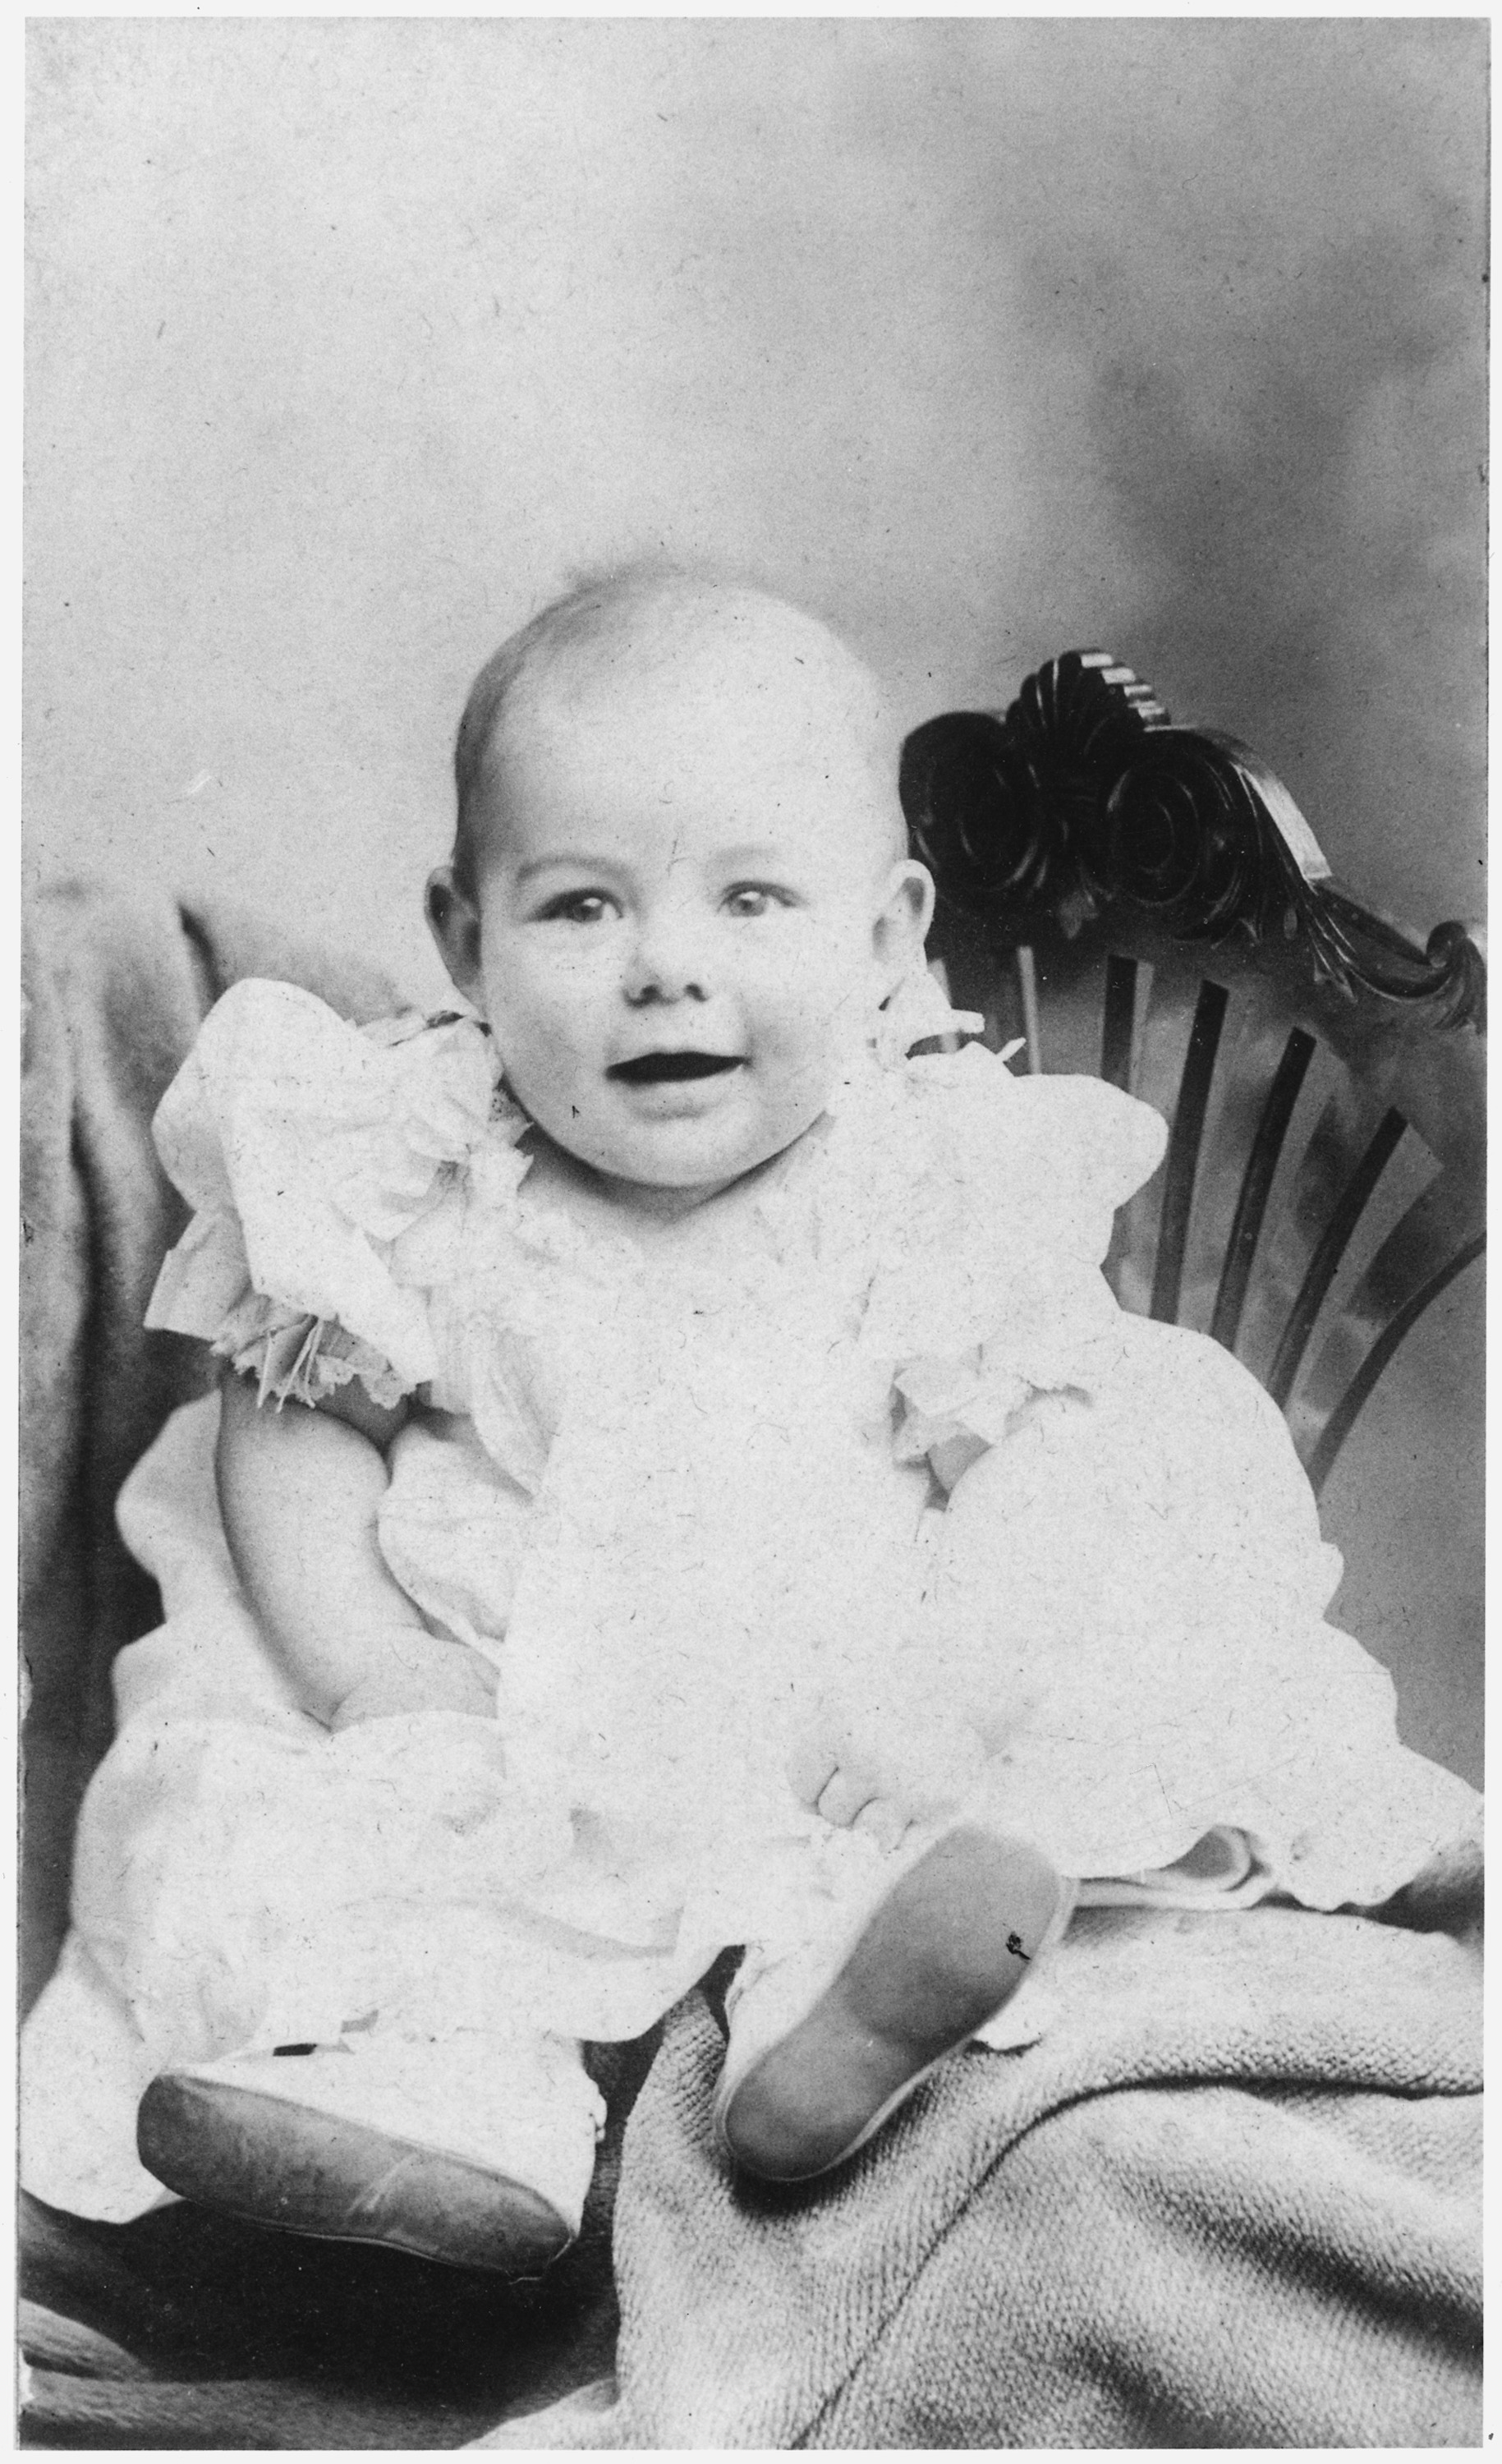 Ernest_Hemingway's_Baby_Picture_-_NARA_-_192665